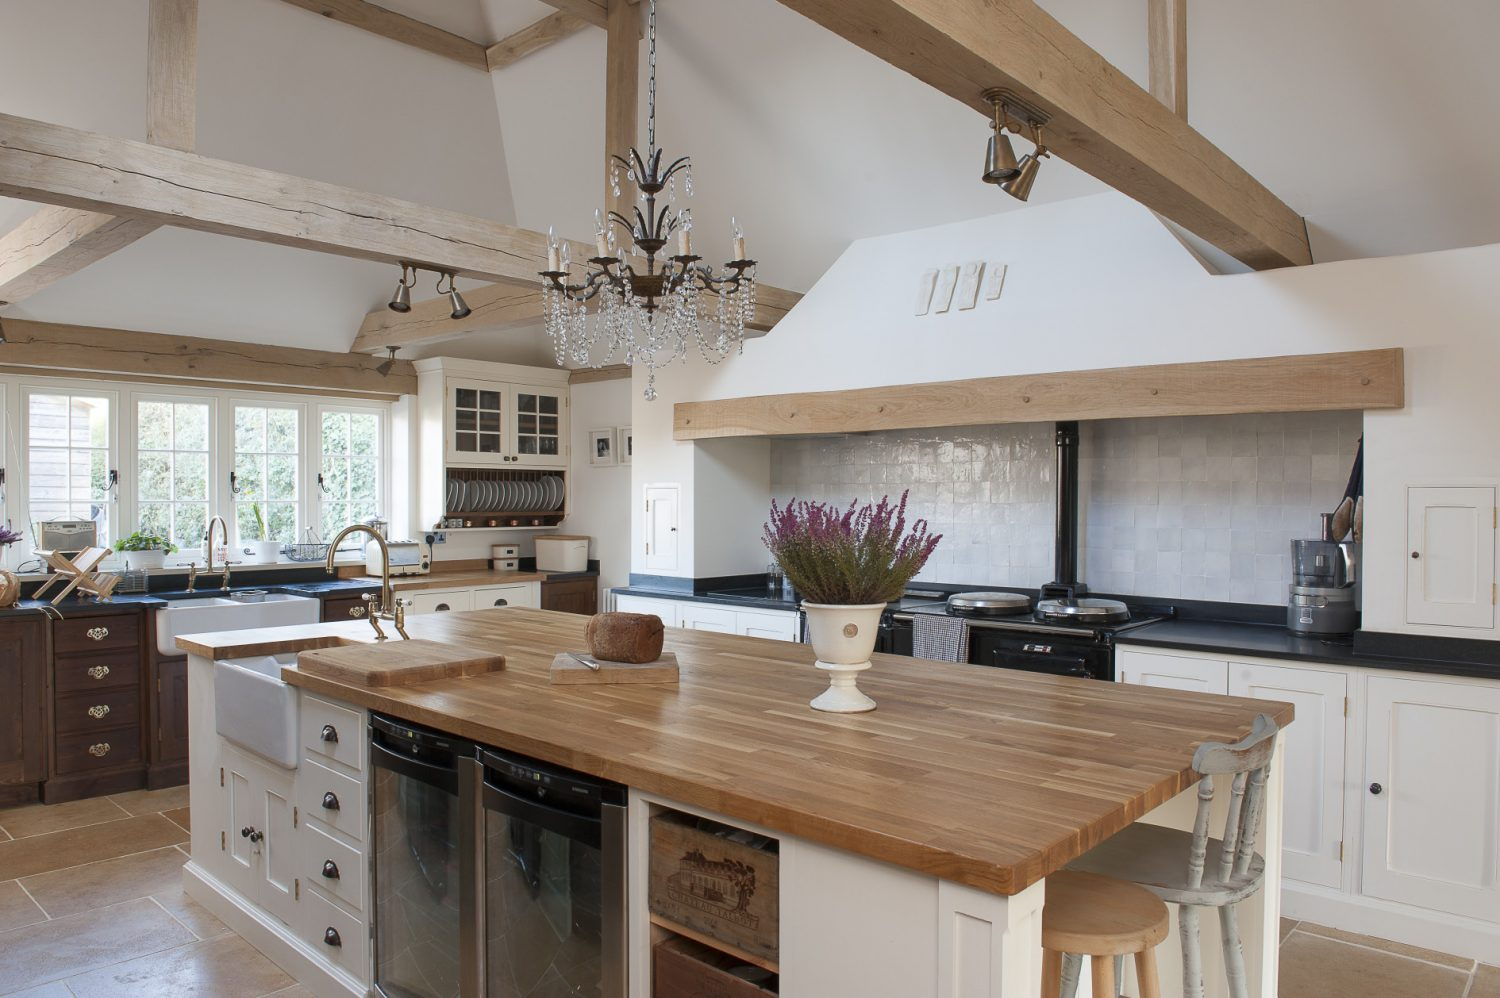 Quercus Construction then built the Shaker units and the huge block oak-topped central island